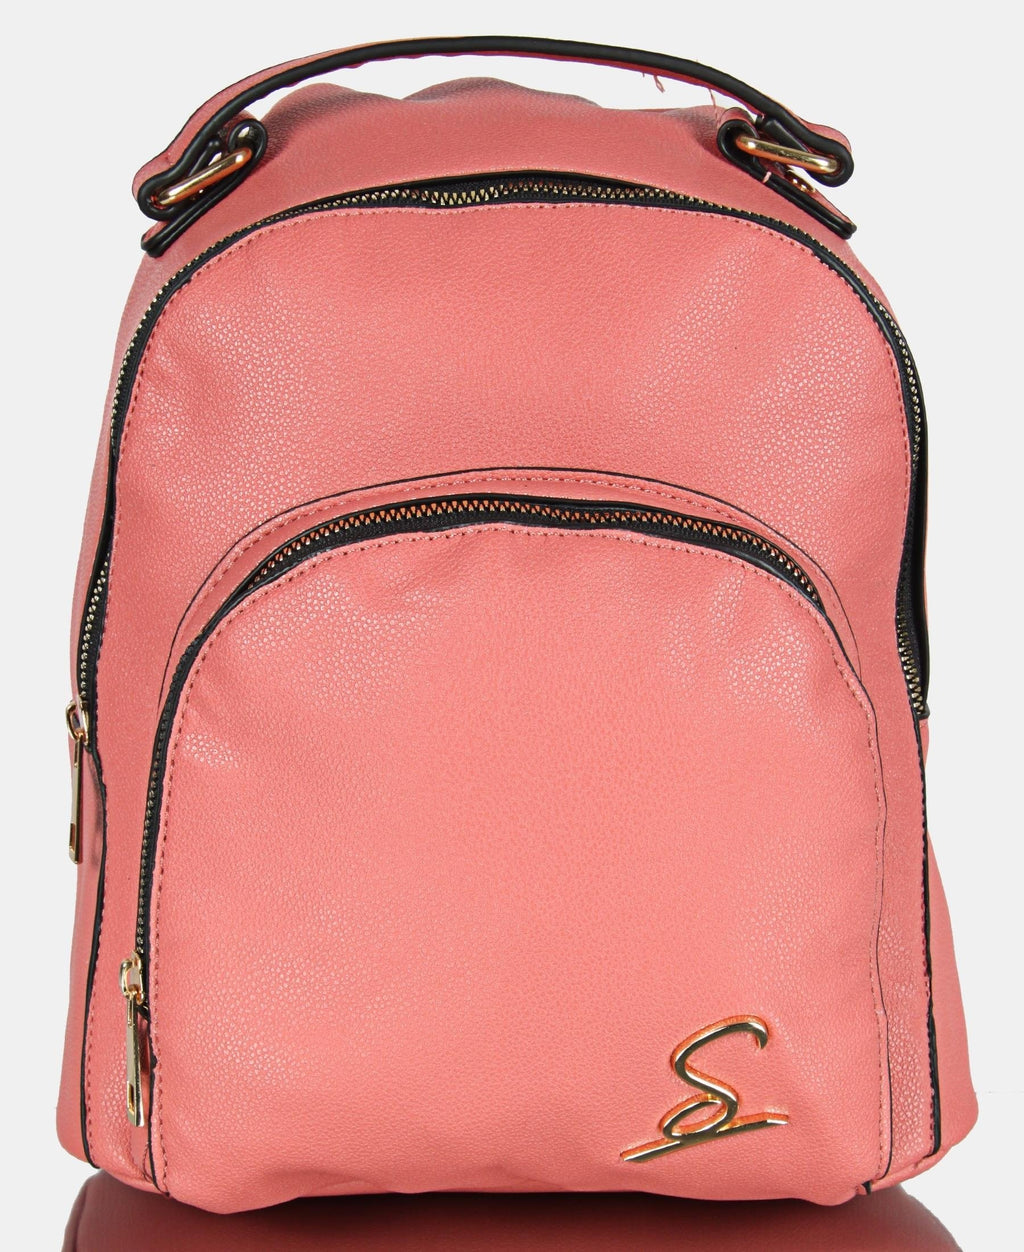 Double Compartment Backpack - Mink